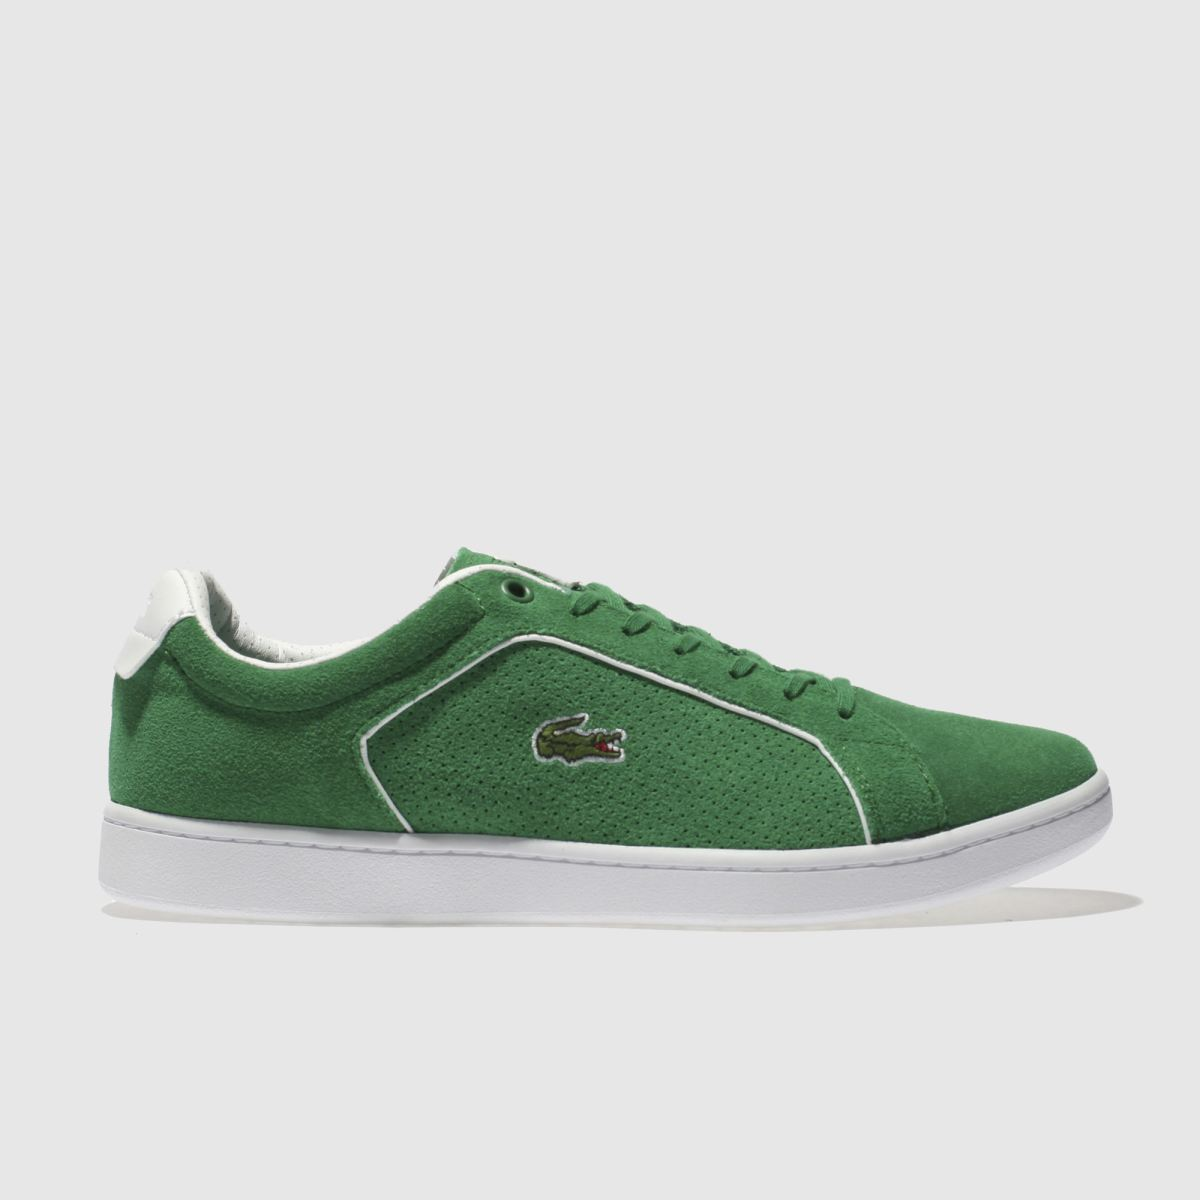 Lacoste Green Carnaby Evo Trainers